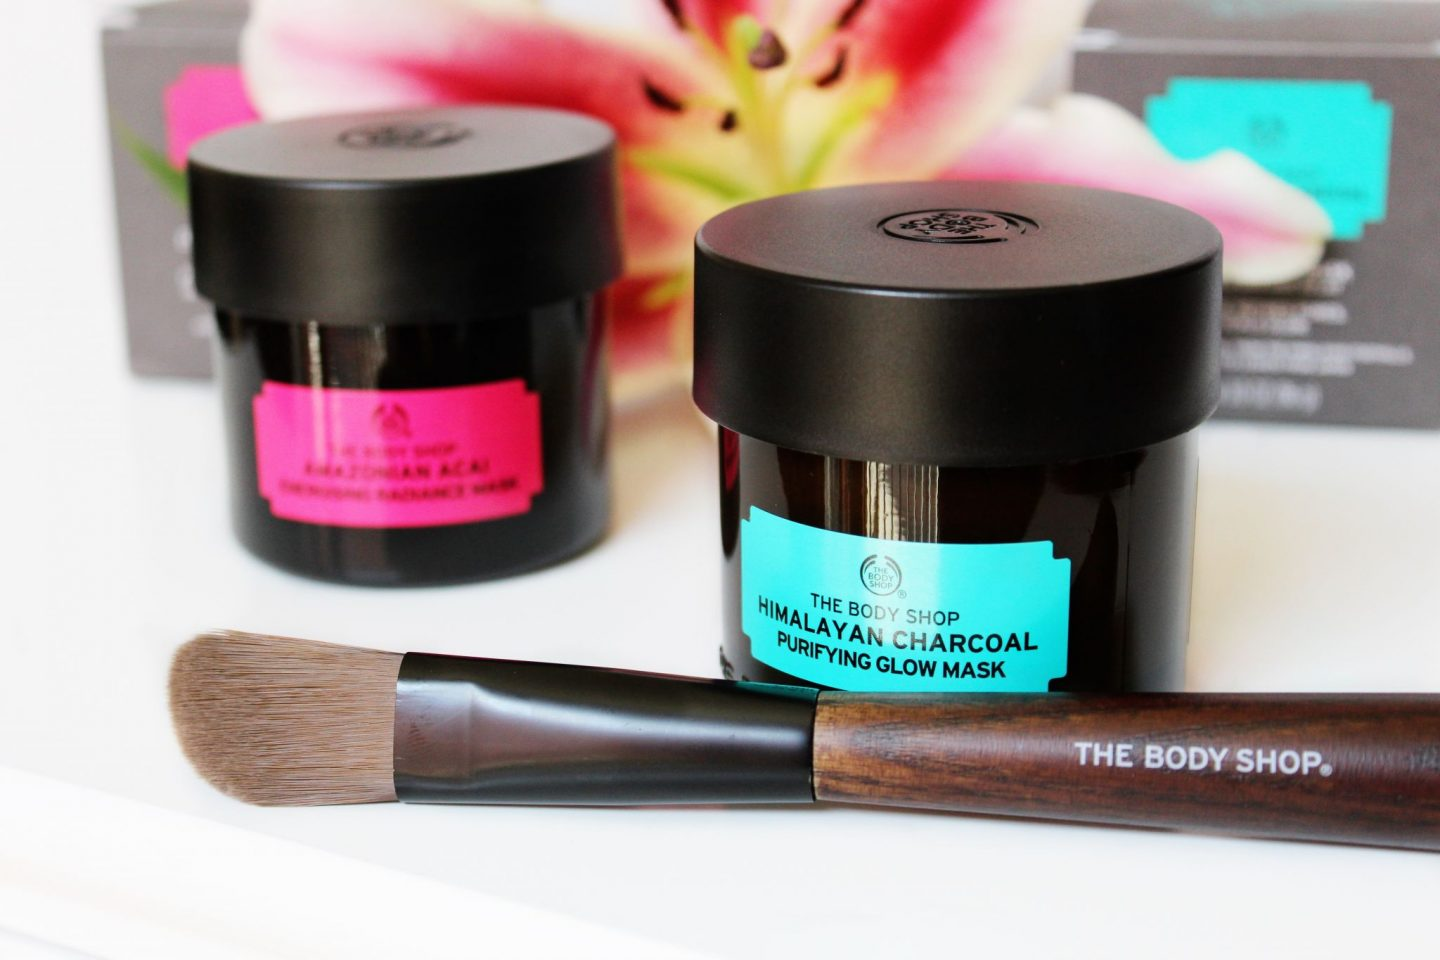 The Body Shop Himalayan Charcoal Purifying Glow Mask Review - Miel and Mint blog